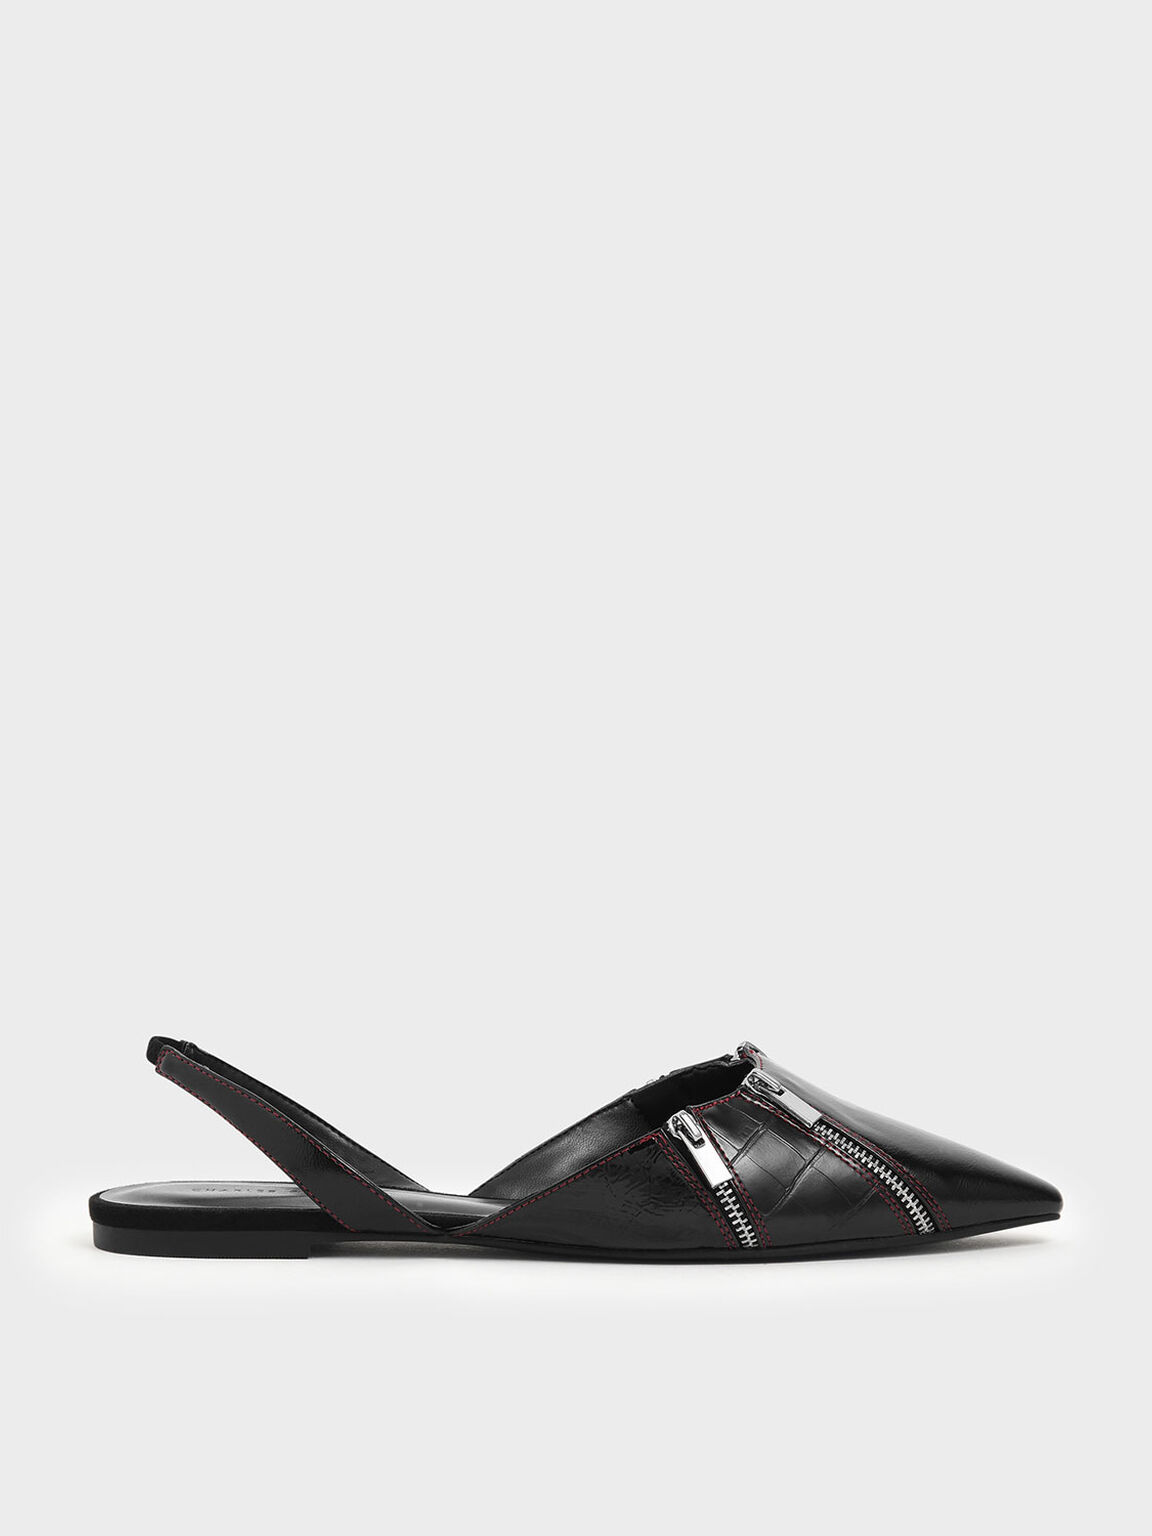 Wrinkled Patent Zip Detail Pointed Toe Slingback Flats, Black, hi-res